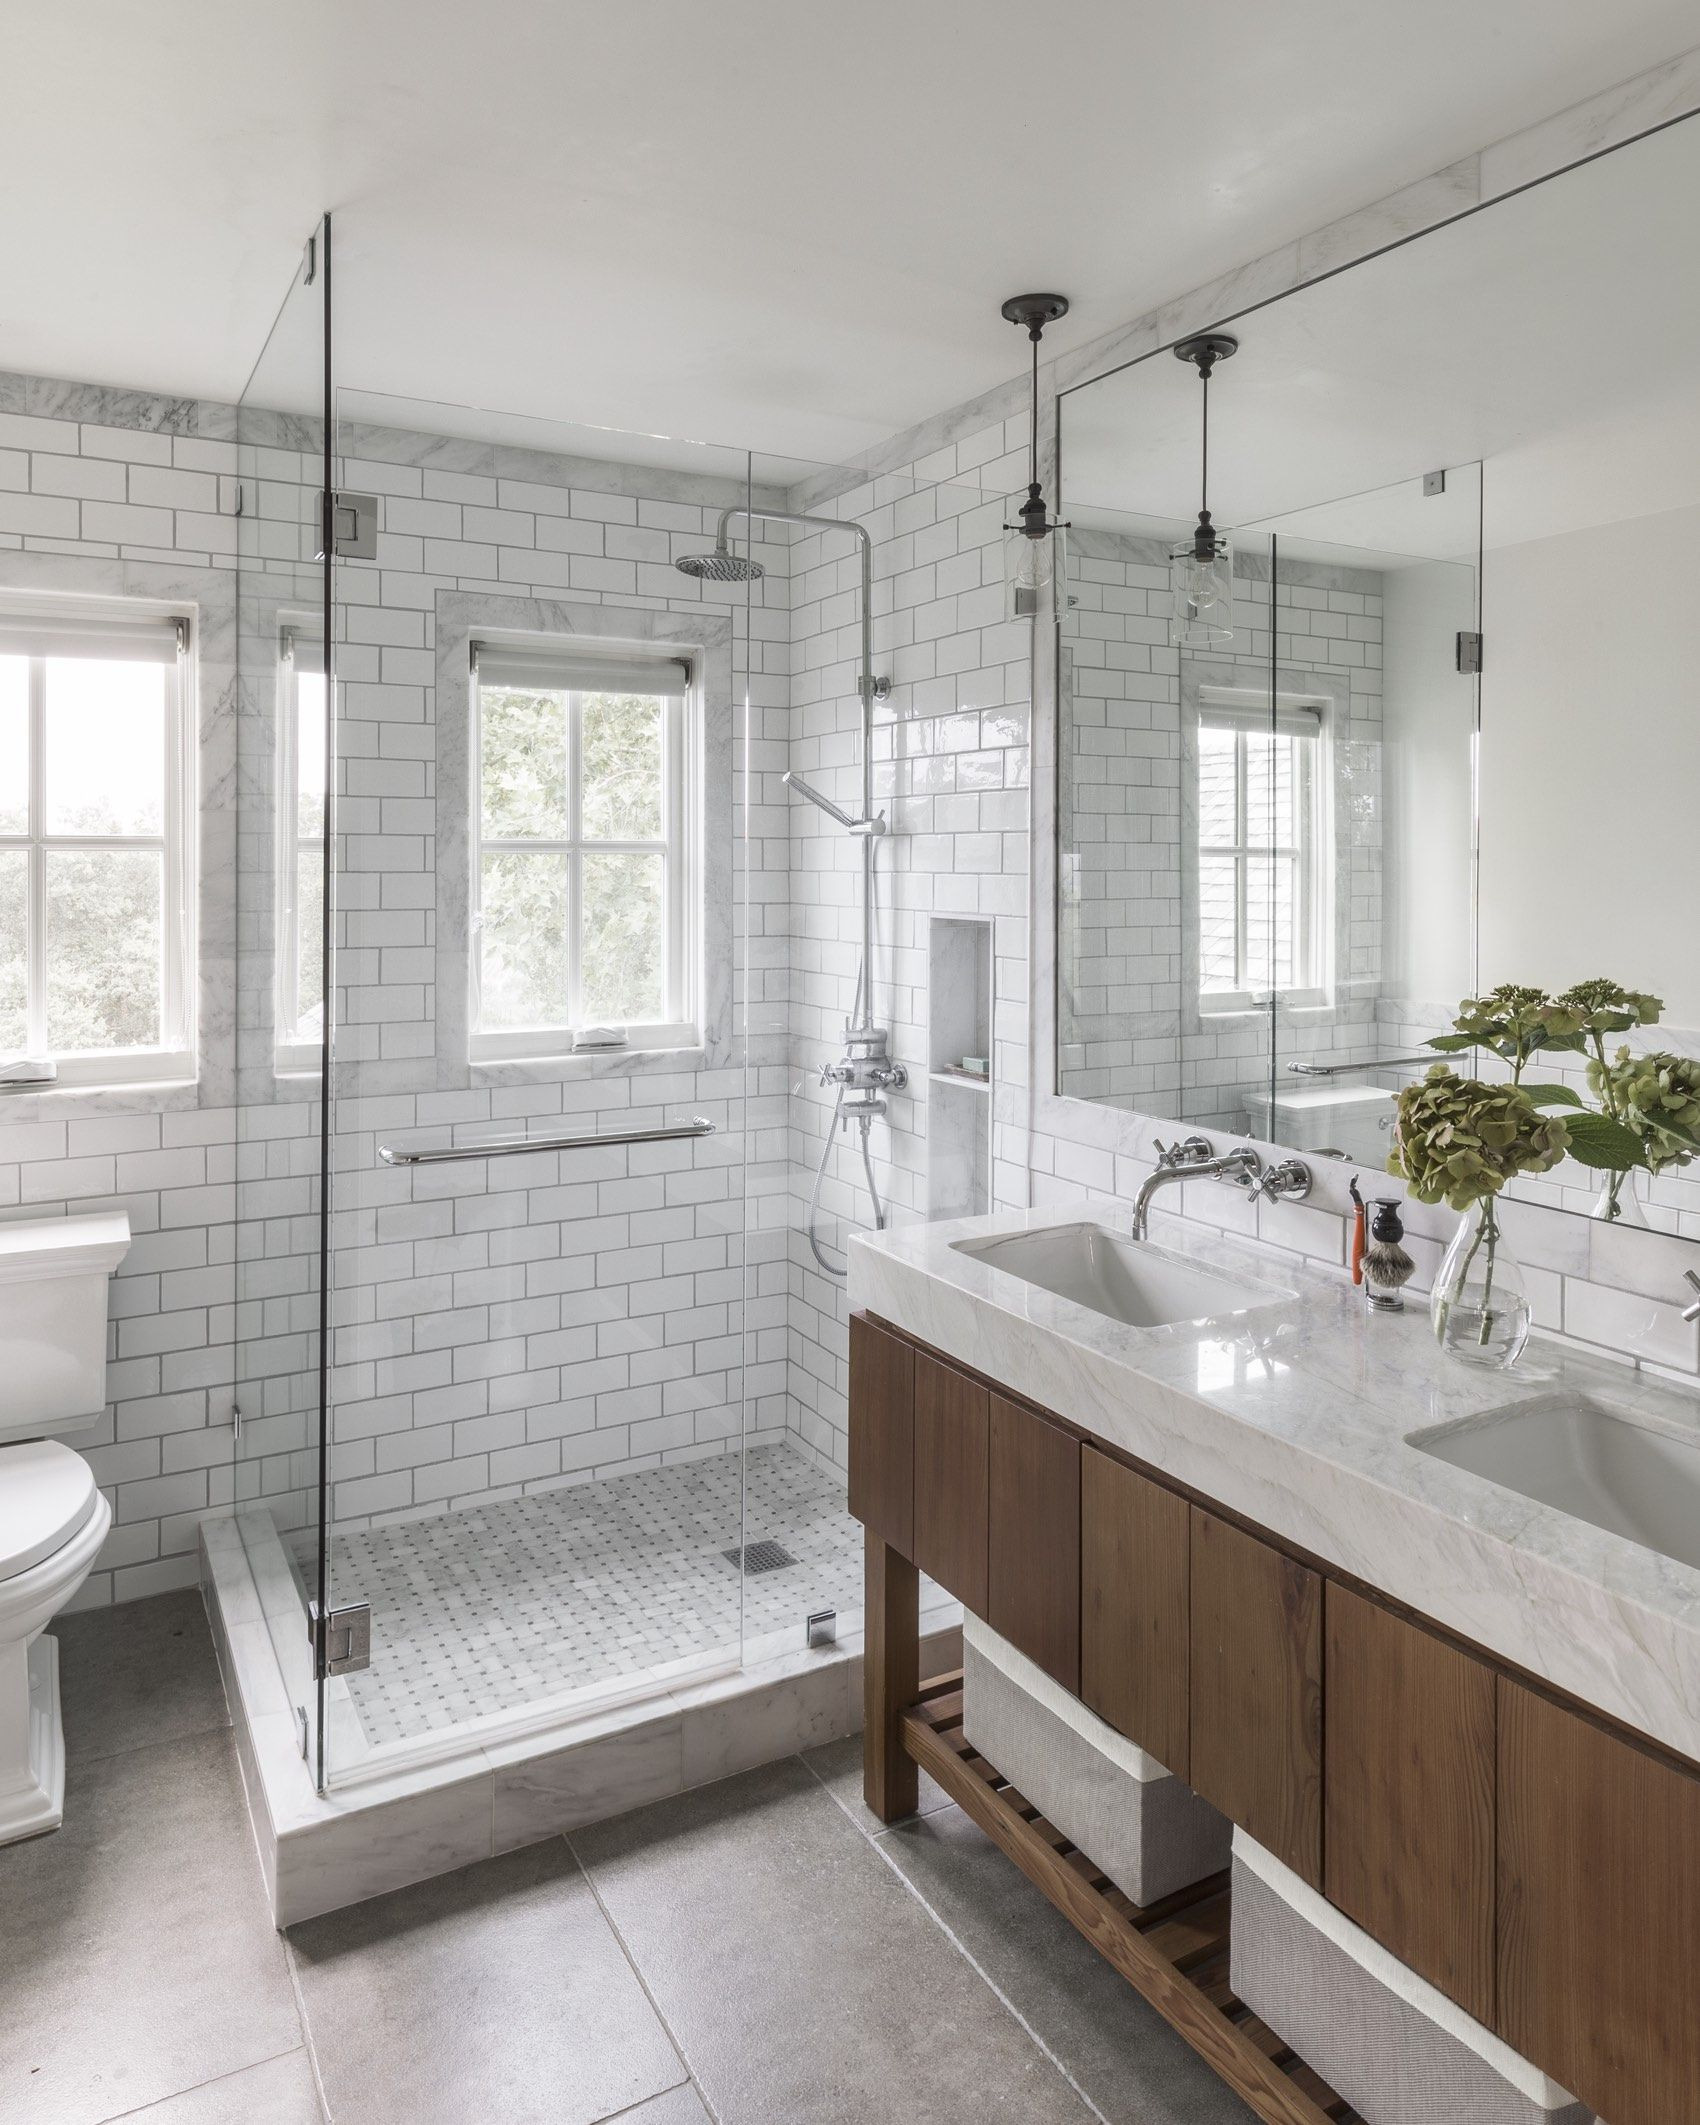 Pictures Of Bathrooms with Walk In Showers Beautiful 25 Walk In Shower Ideas Bathrooms with Walk In Showers